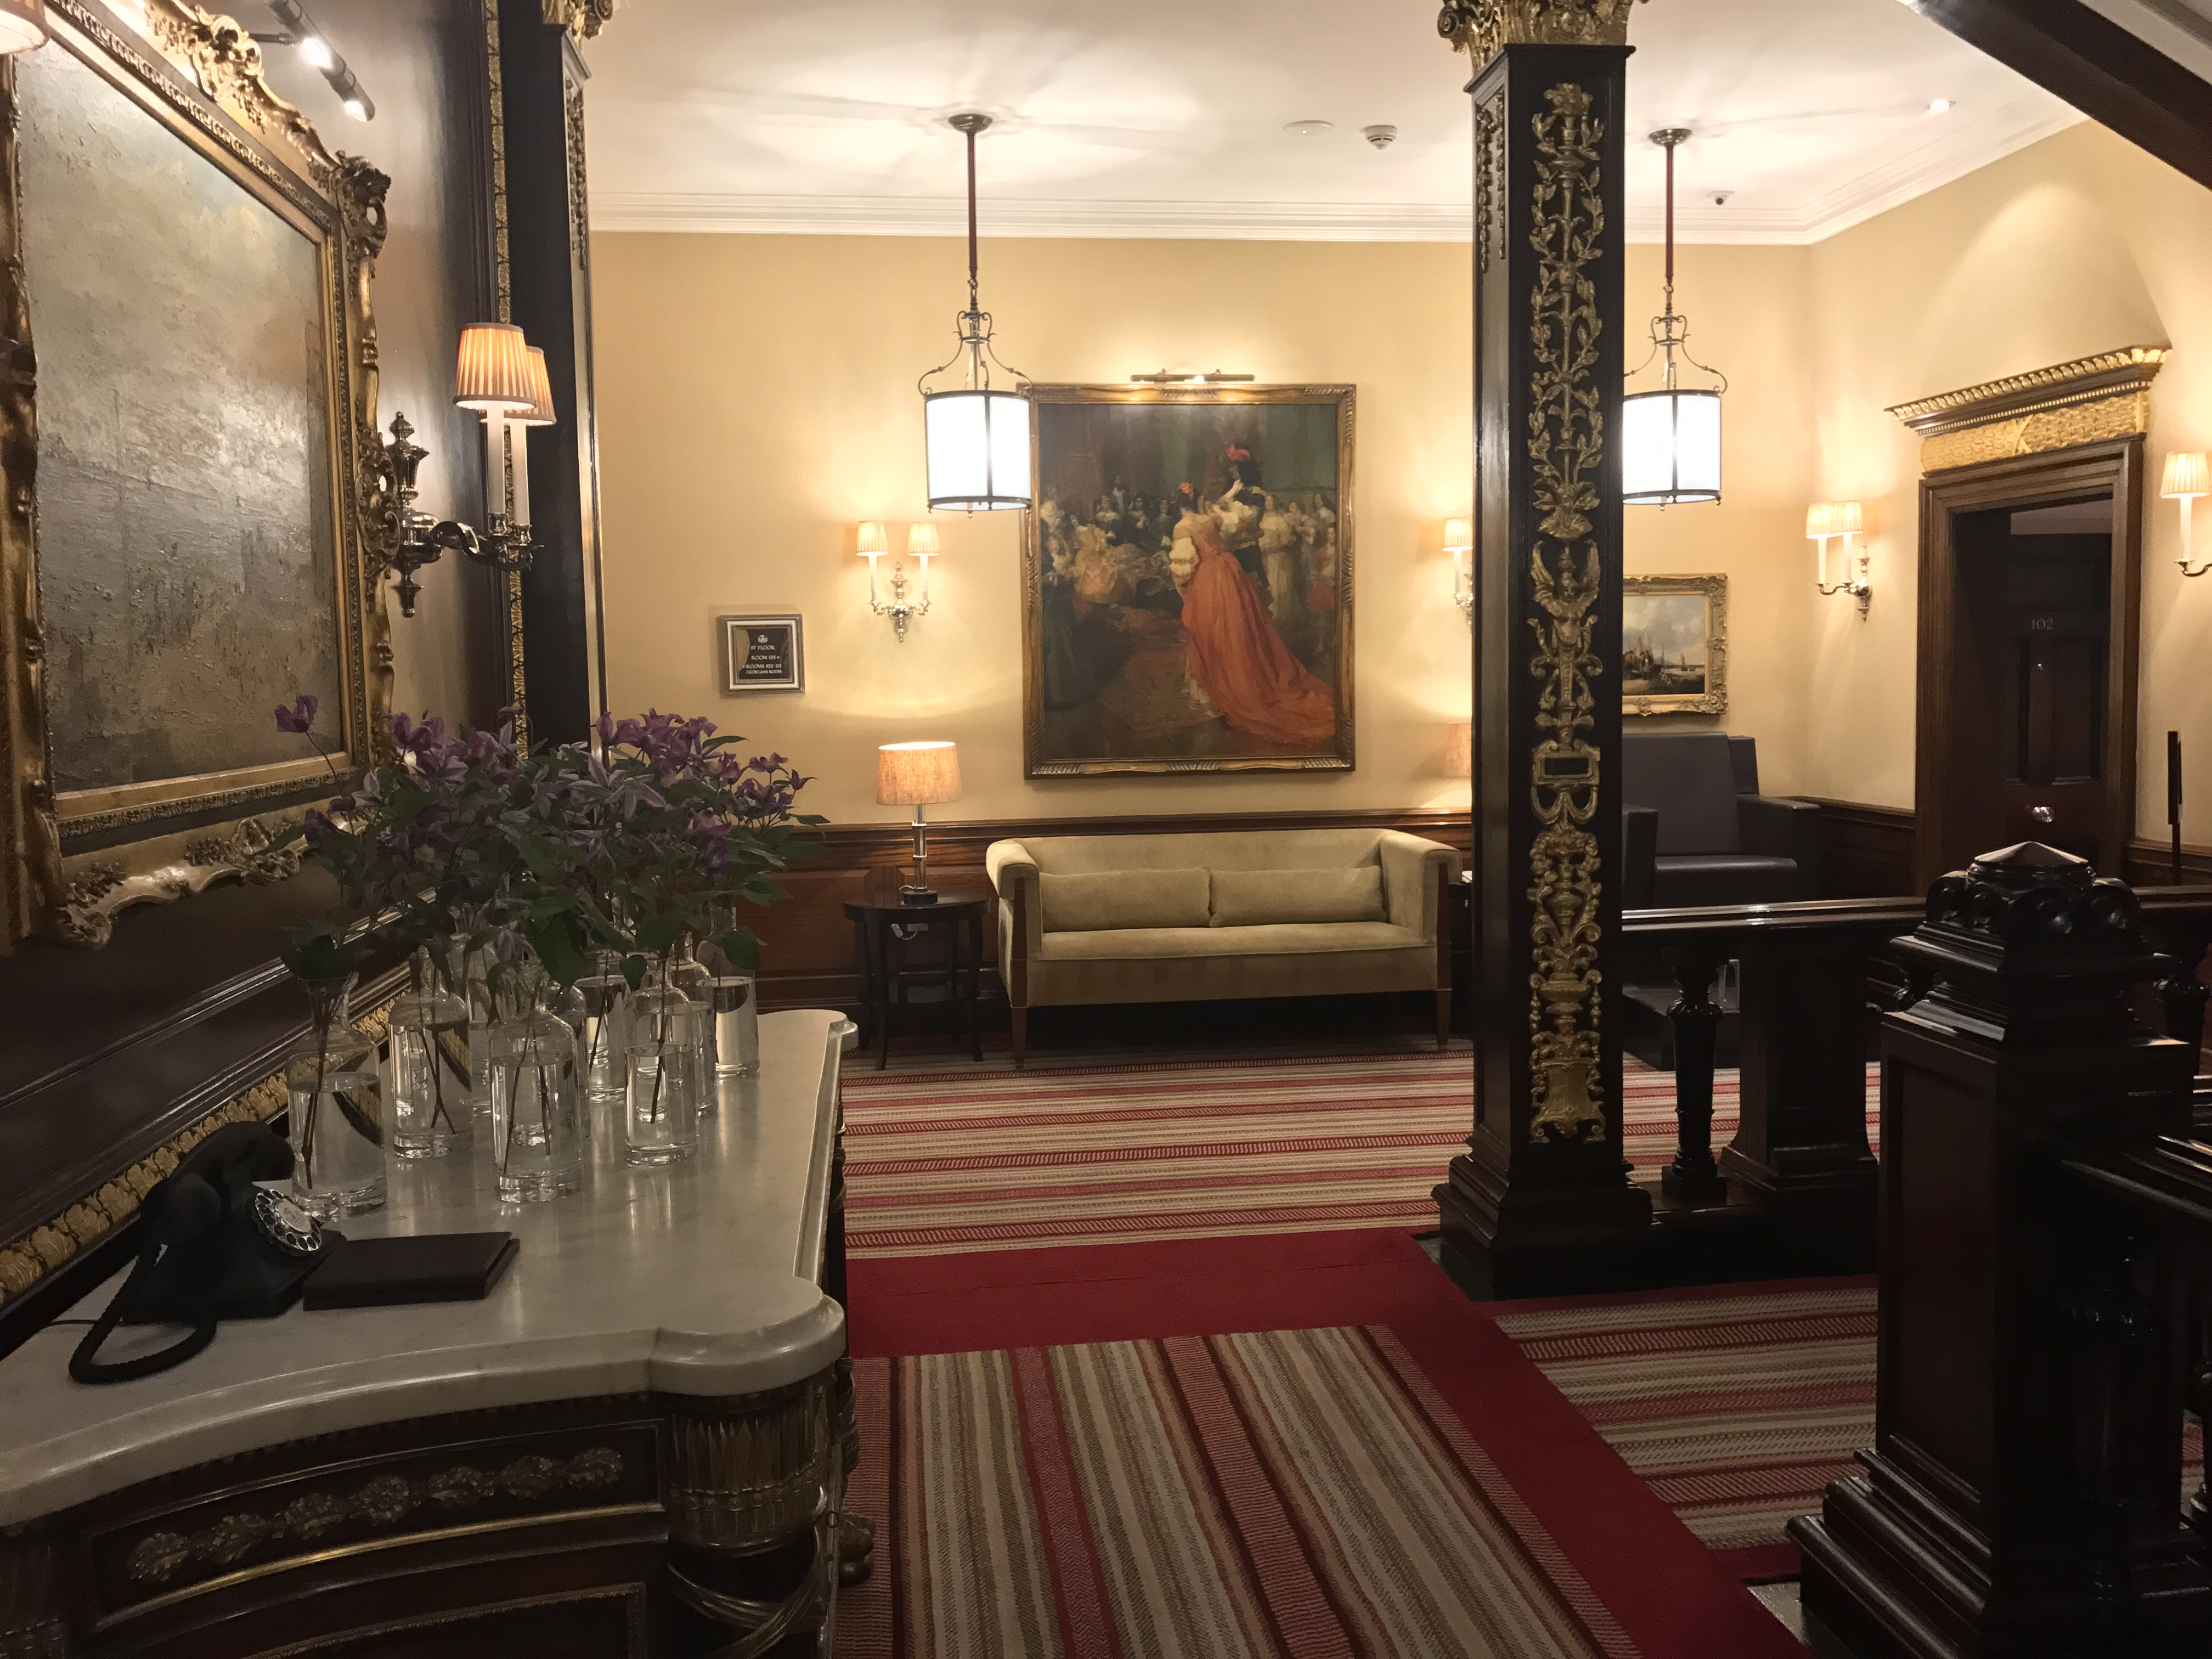 Hall at the Connaught hotel